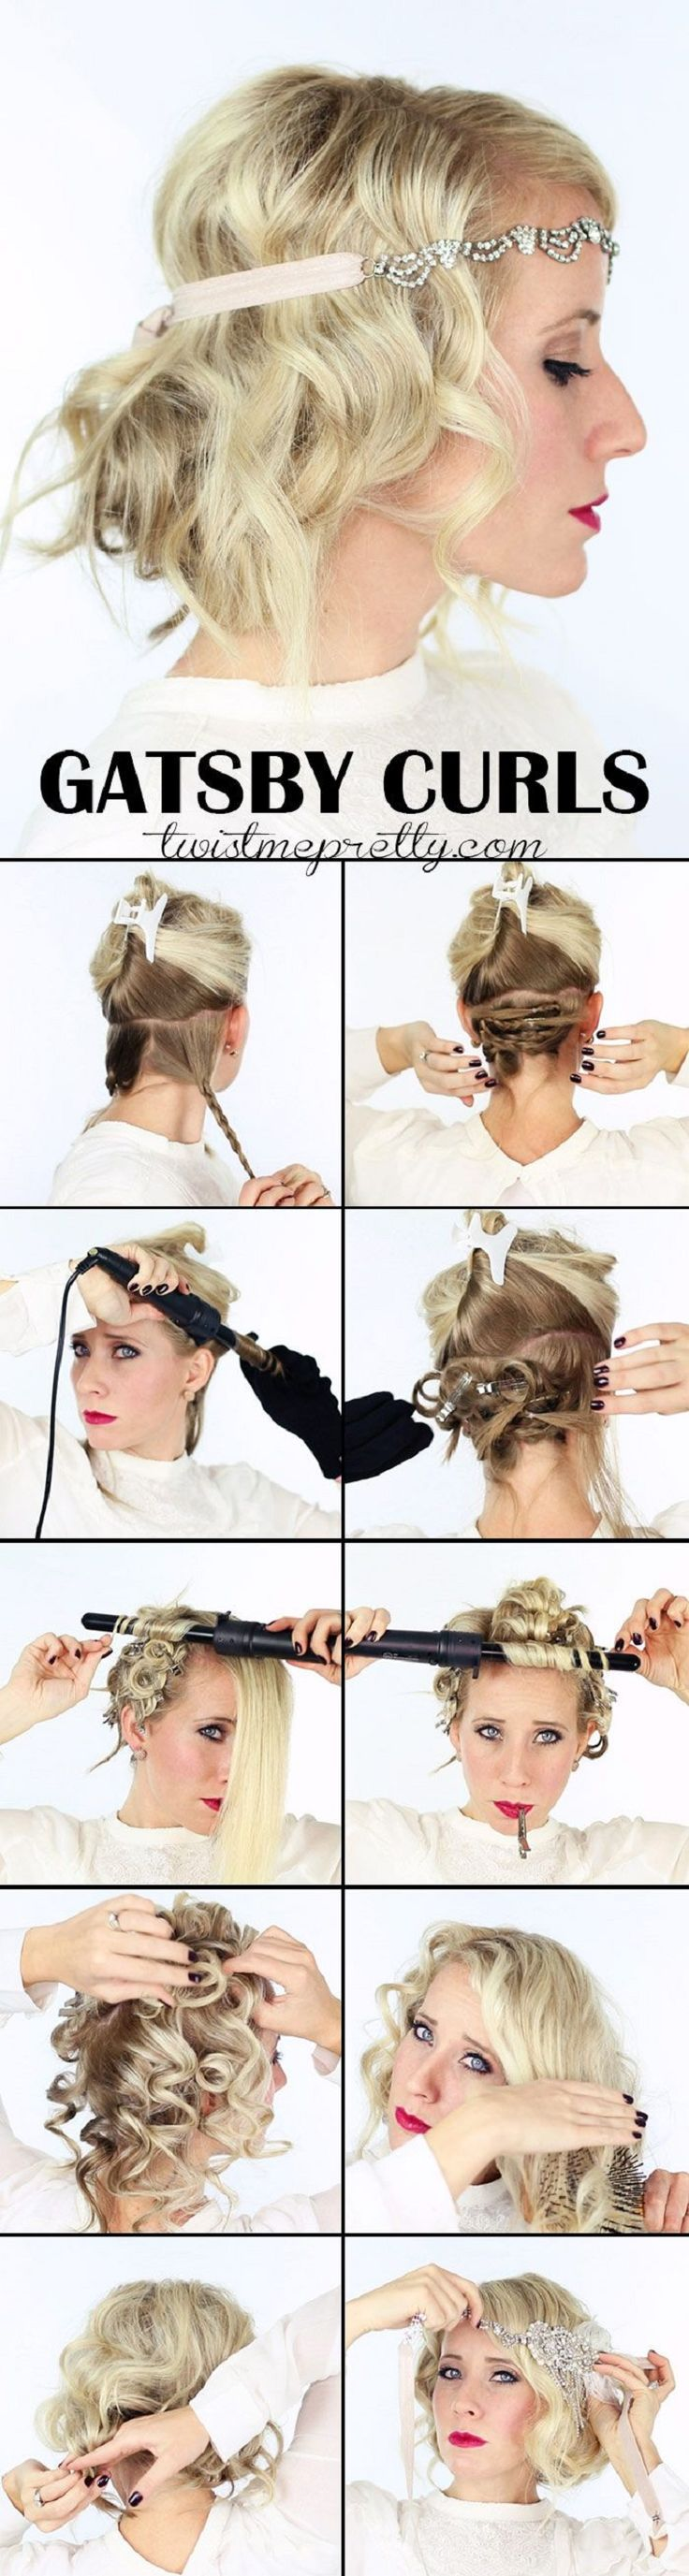 The perfect Gatsby Curls - 12 Vintage-Inspired DIY Hairstyle Tutorials | GleamItUp